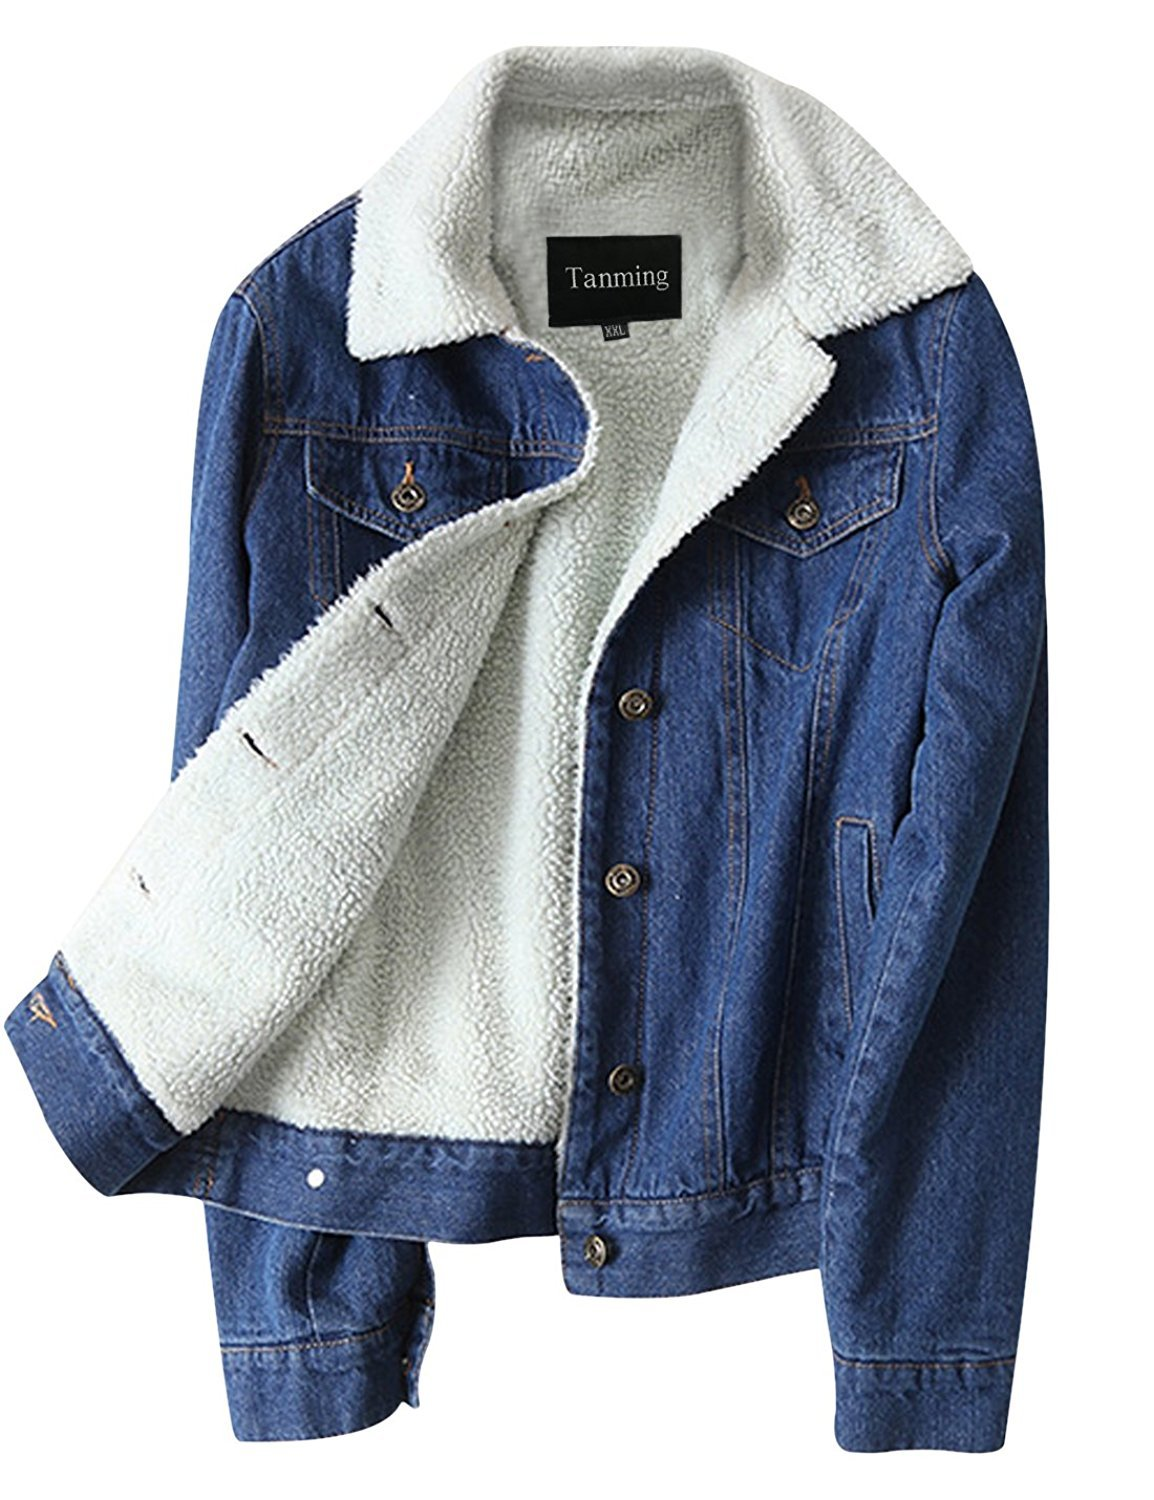 Tanming Women's Classic Style Sherpa Lined Denim Jean Jacket (Blue TM3, XX-Large)